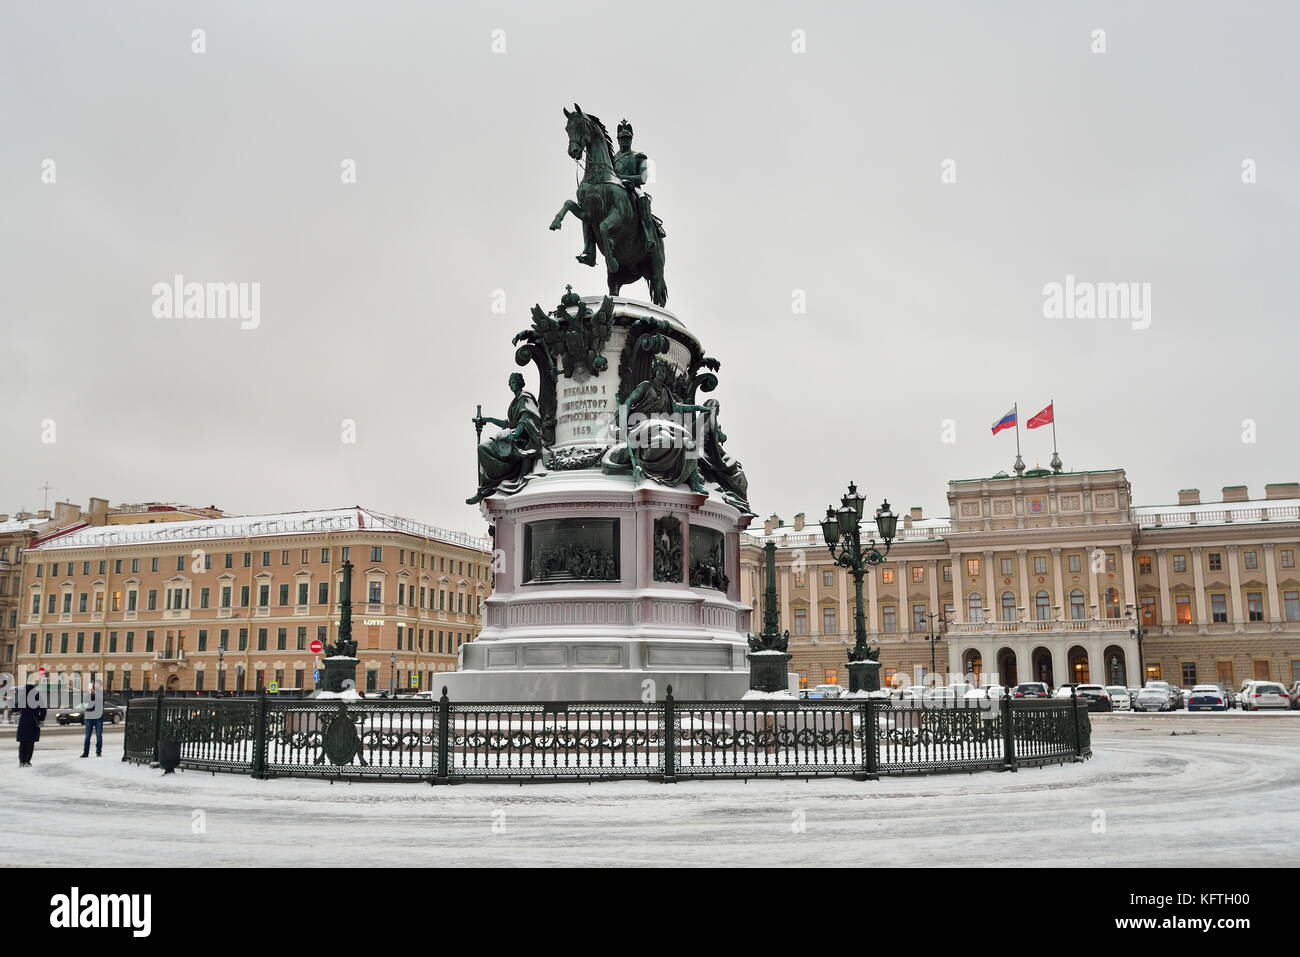 Monument to Nicholas 1 St. Isaac's square in winter. - Stock Image